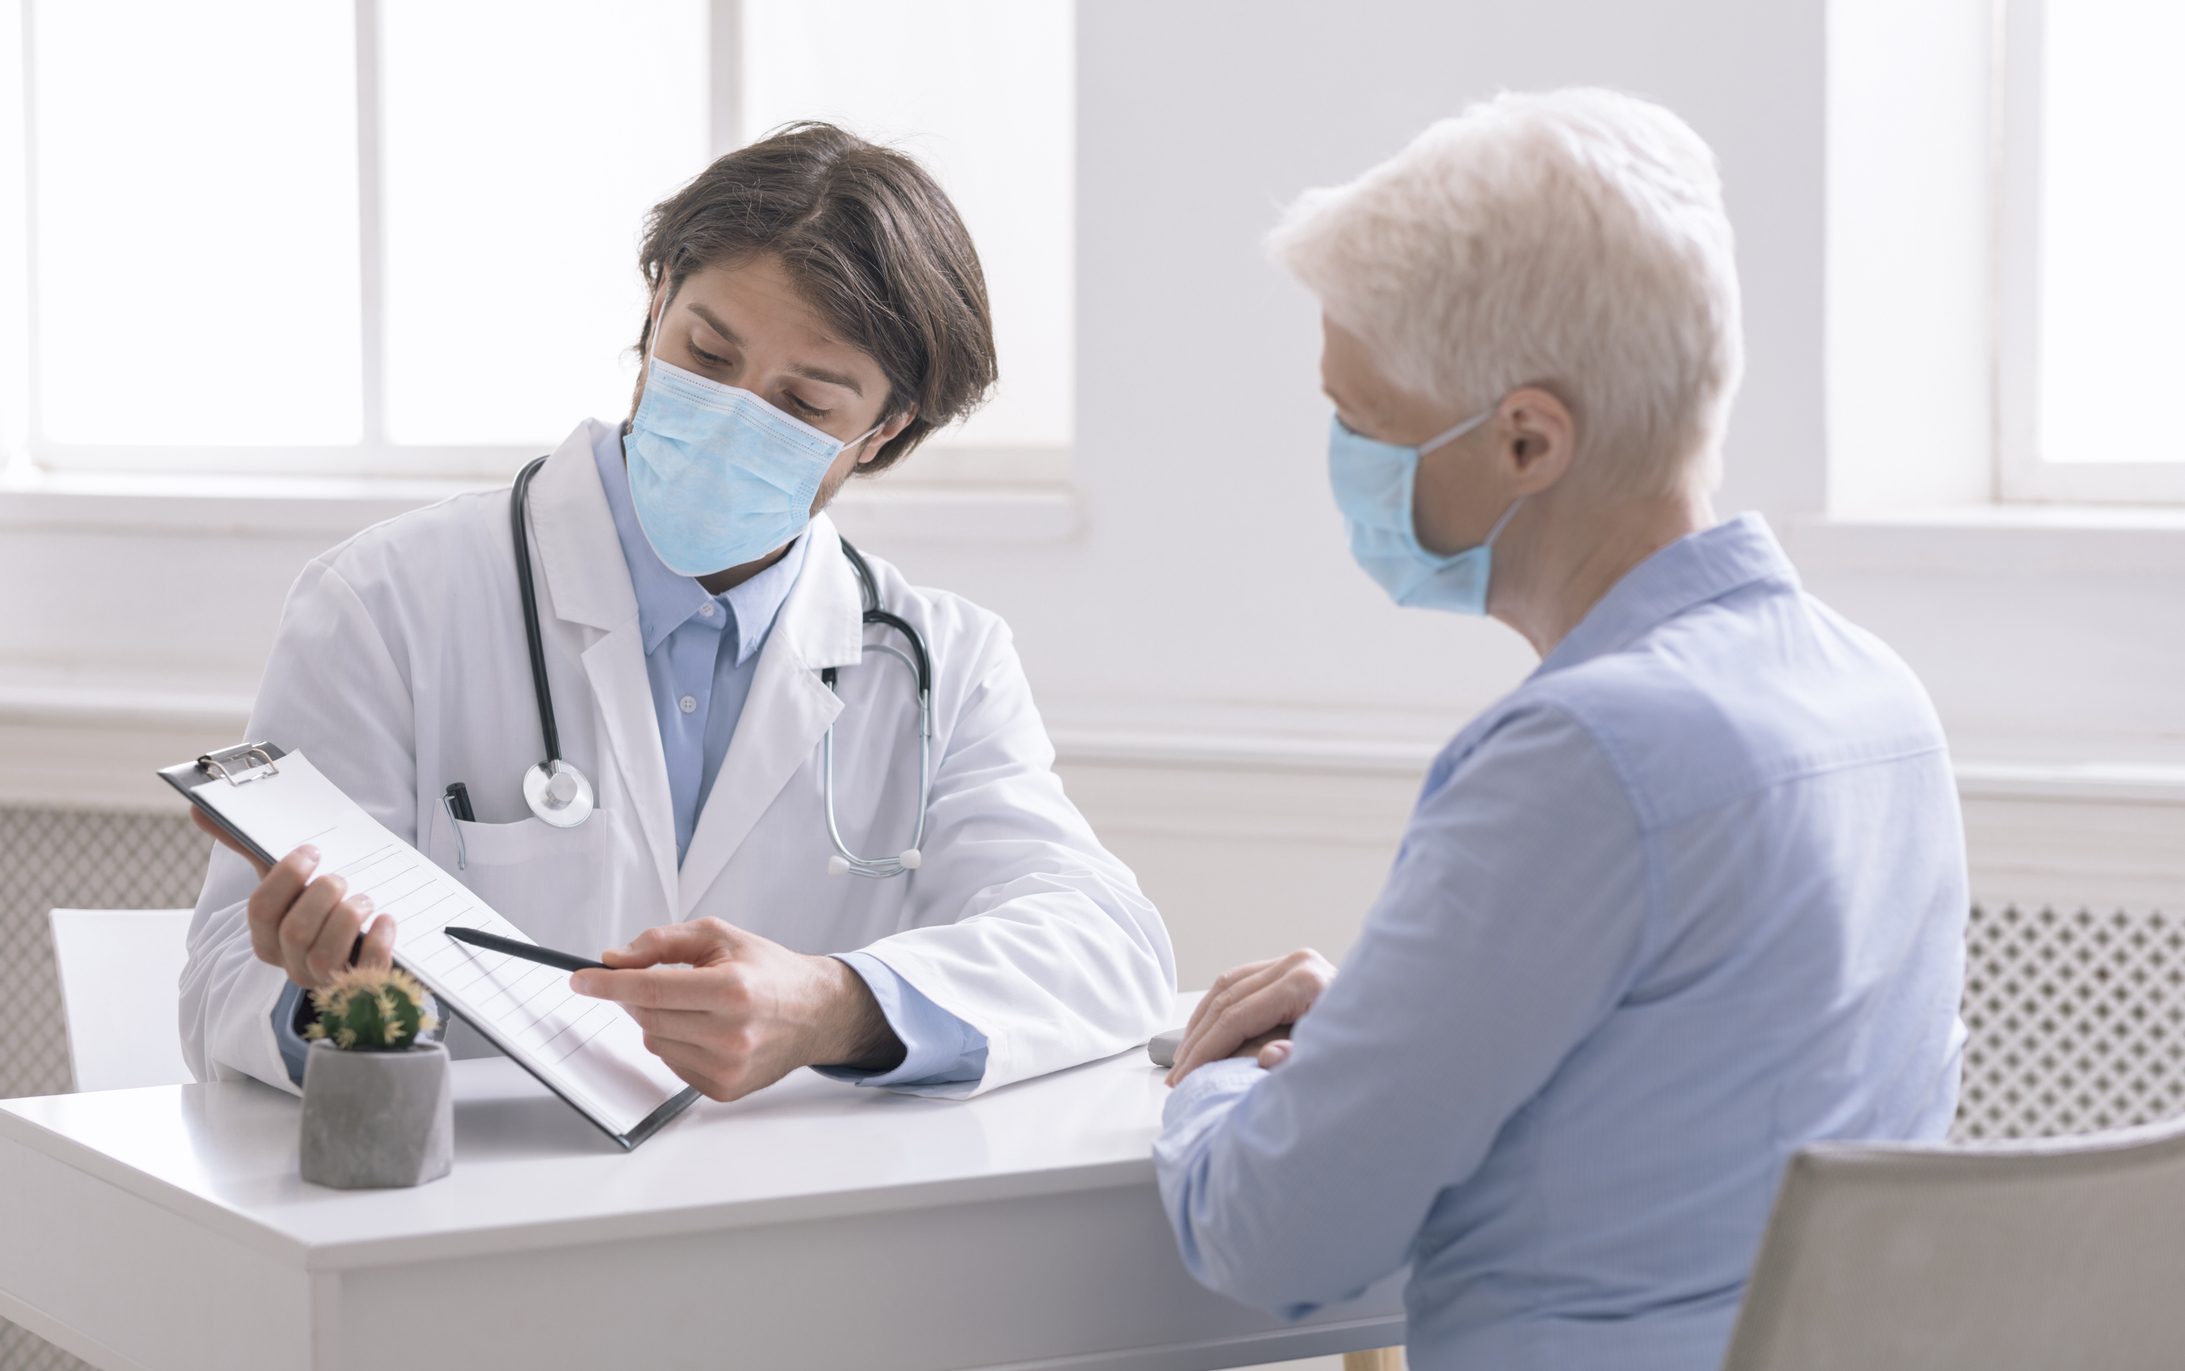 Medical professional reviewing information with a patient.